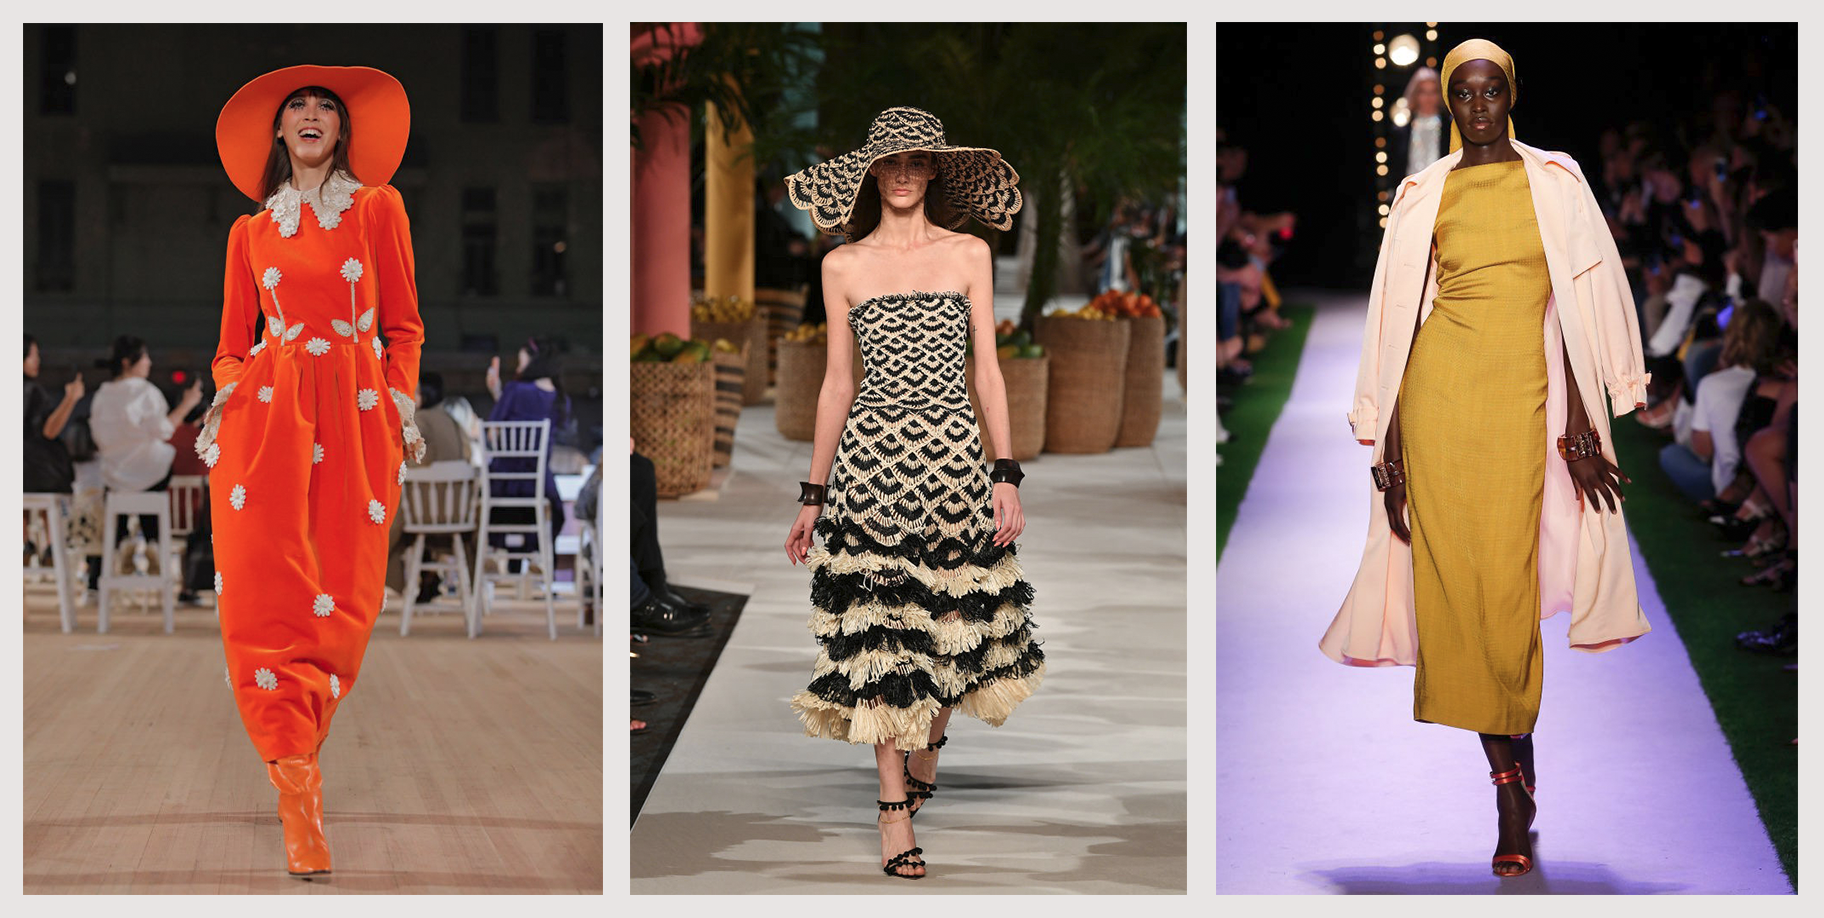 5 Dynamic Trends from Fashion Week That You Can Incorporate Into Your Home